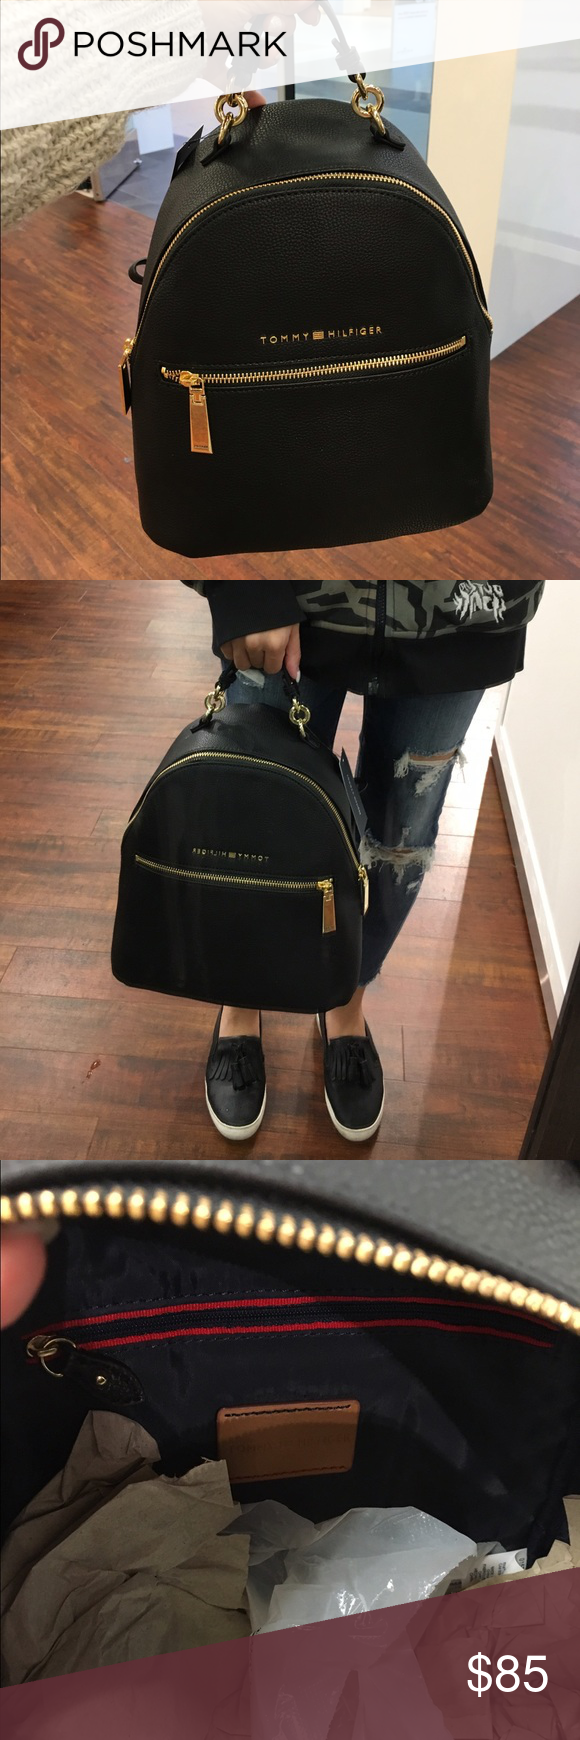 Tommy Hilfiger back pack Brand new. Approx 40cmx 30cmx 15cm. Tommy Hilfiger Bags Backpacks